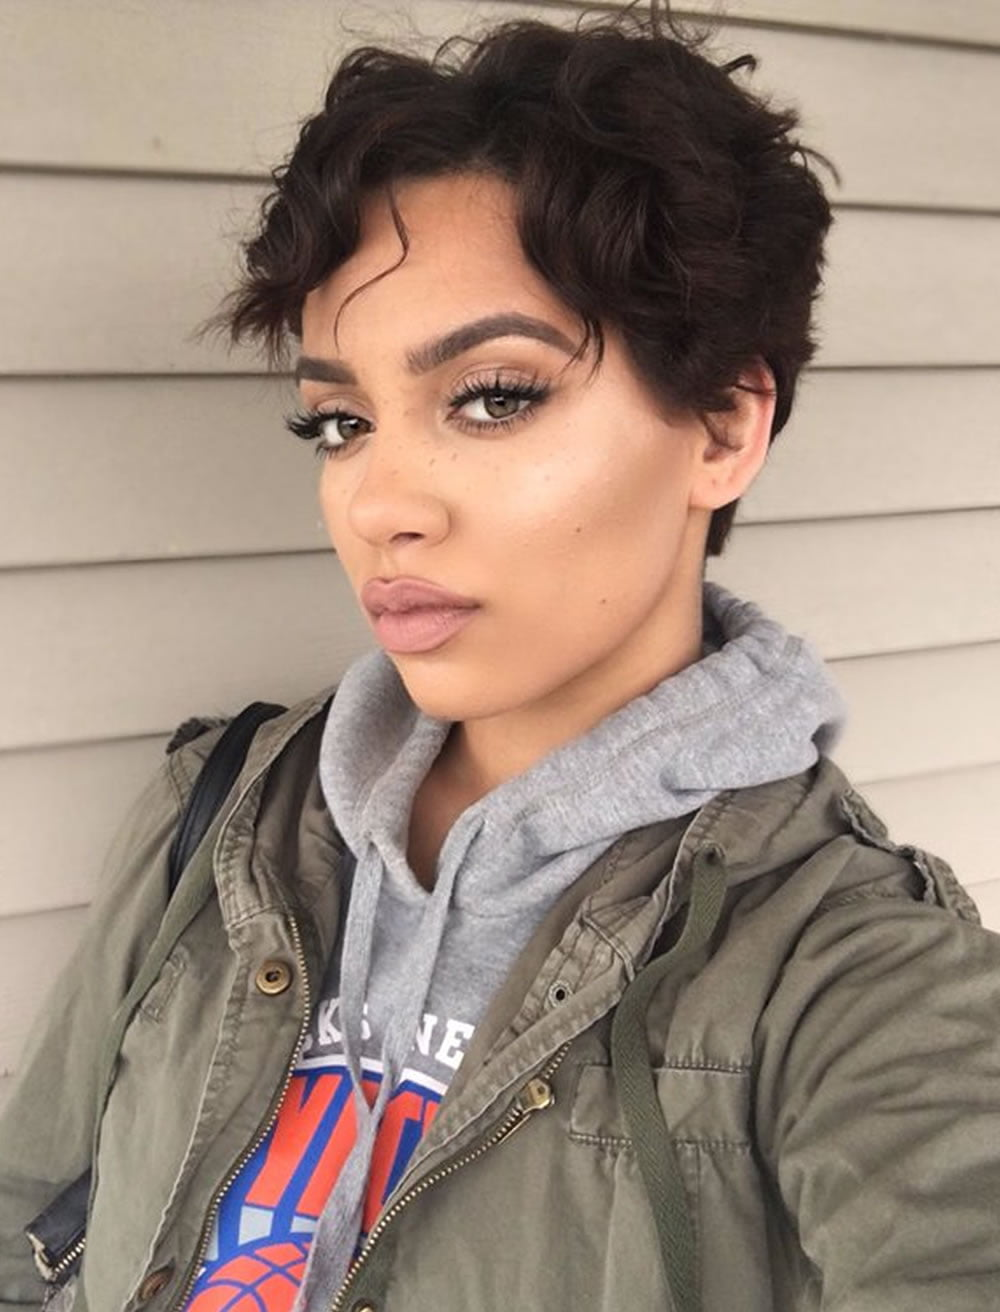 Pixie Short Hairstyles for Black Women 2018-2019 – Page 2 ... - photo#17